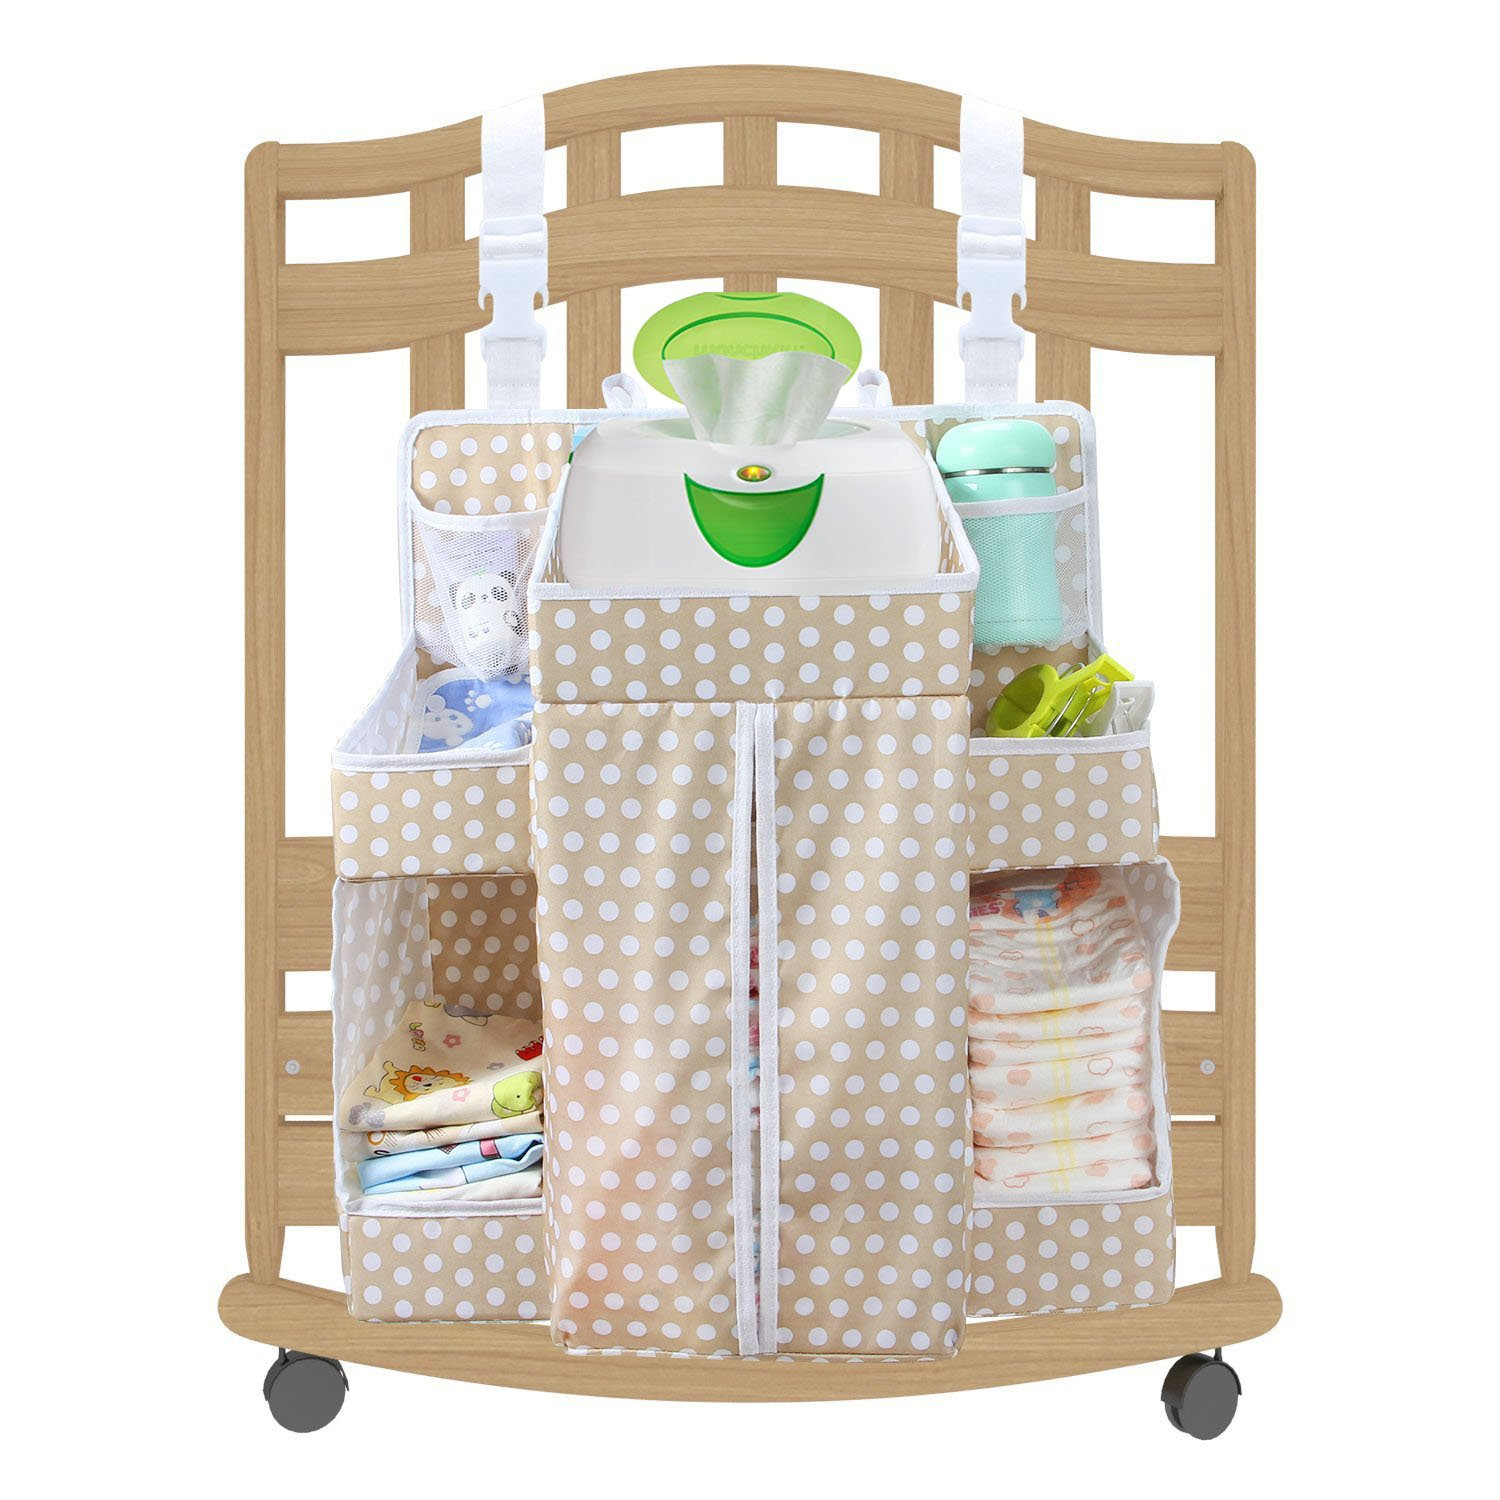 Biubee Baby Large Diaper Nursery Hanging Organizer - Changing Table Organizer Diaper Caddy Storage Fits any Size Rails(brown)